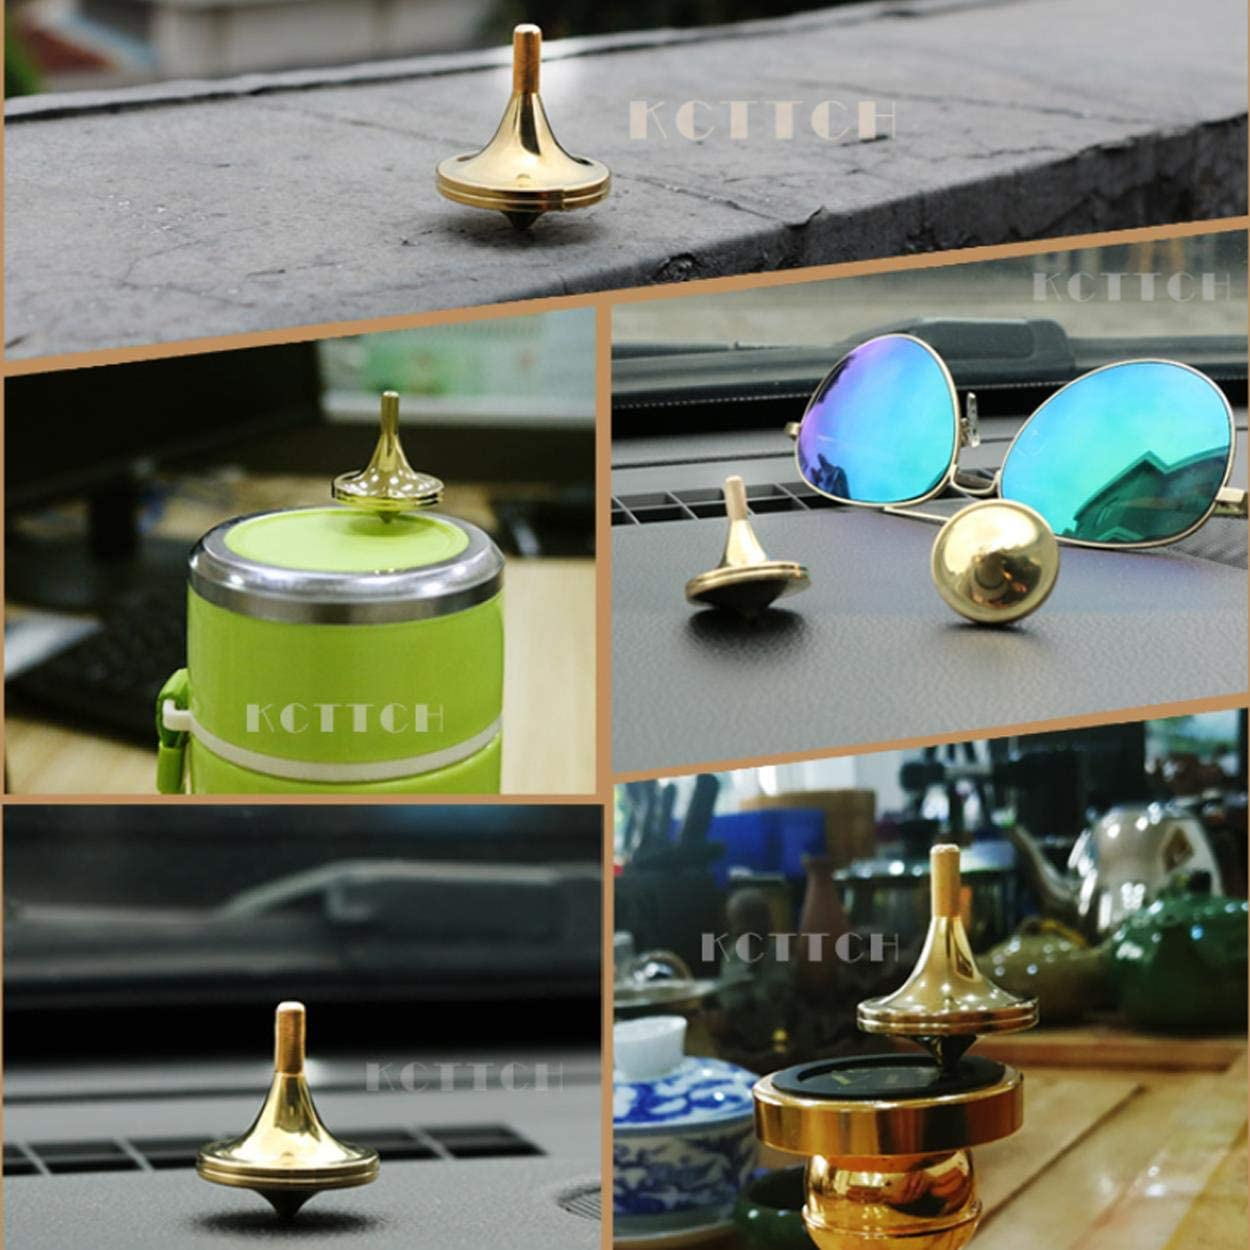 Metal Toy Gyro,The Perfect Balance Between Performance and Beauty-Continue to Rotate for More Than 4 Minutes KCTTCH Luxury Pure Copper Spinning Top Gold